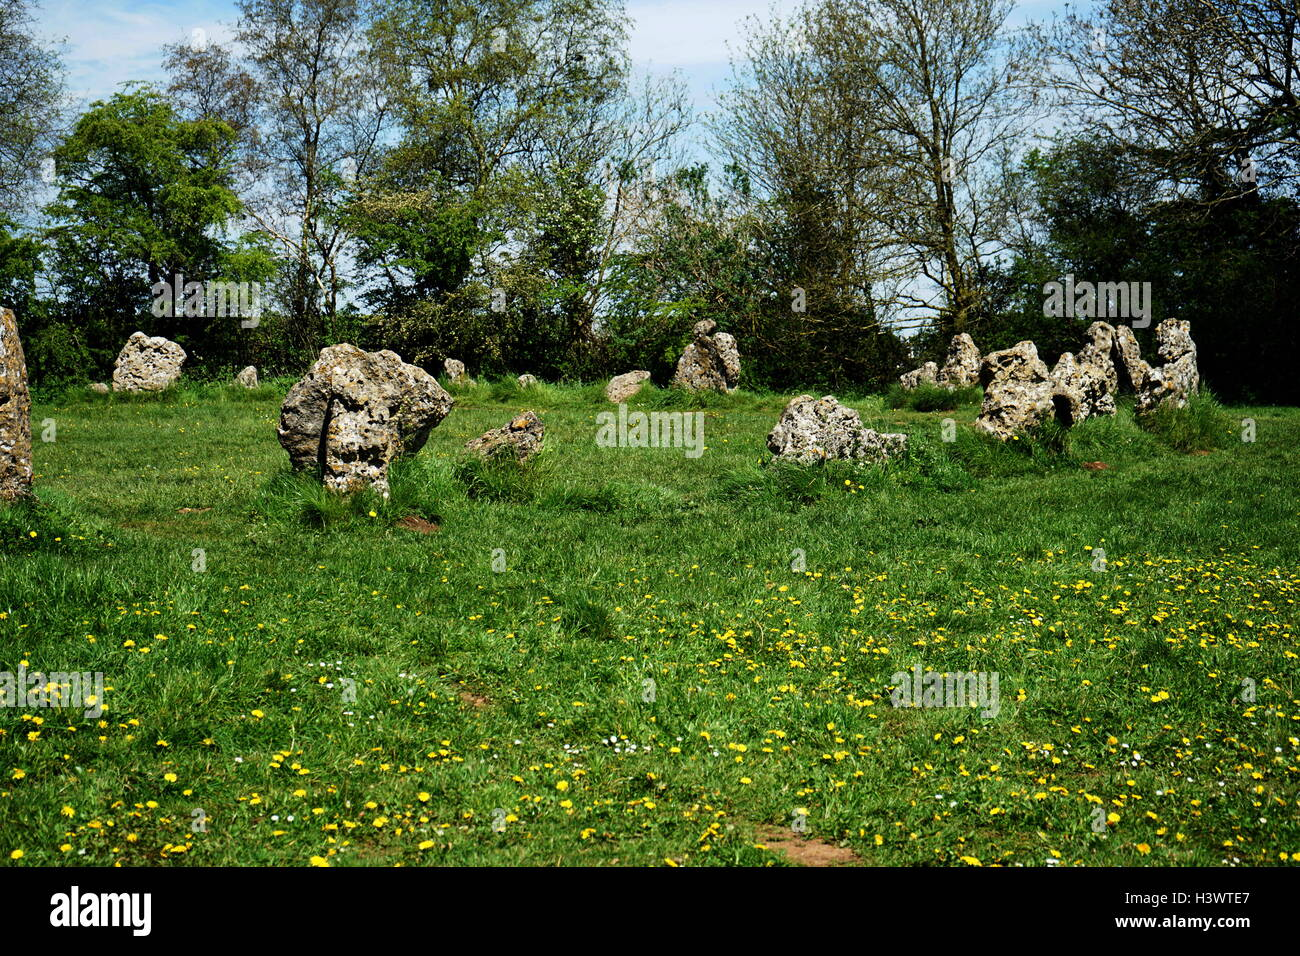 The King's Men Stone Circle which is part of the Rollright Stones, Long Compton, Oxfordshire - Stock Image